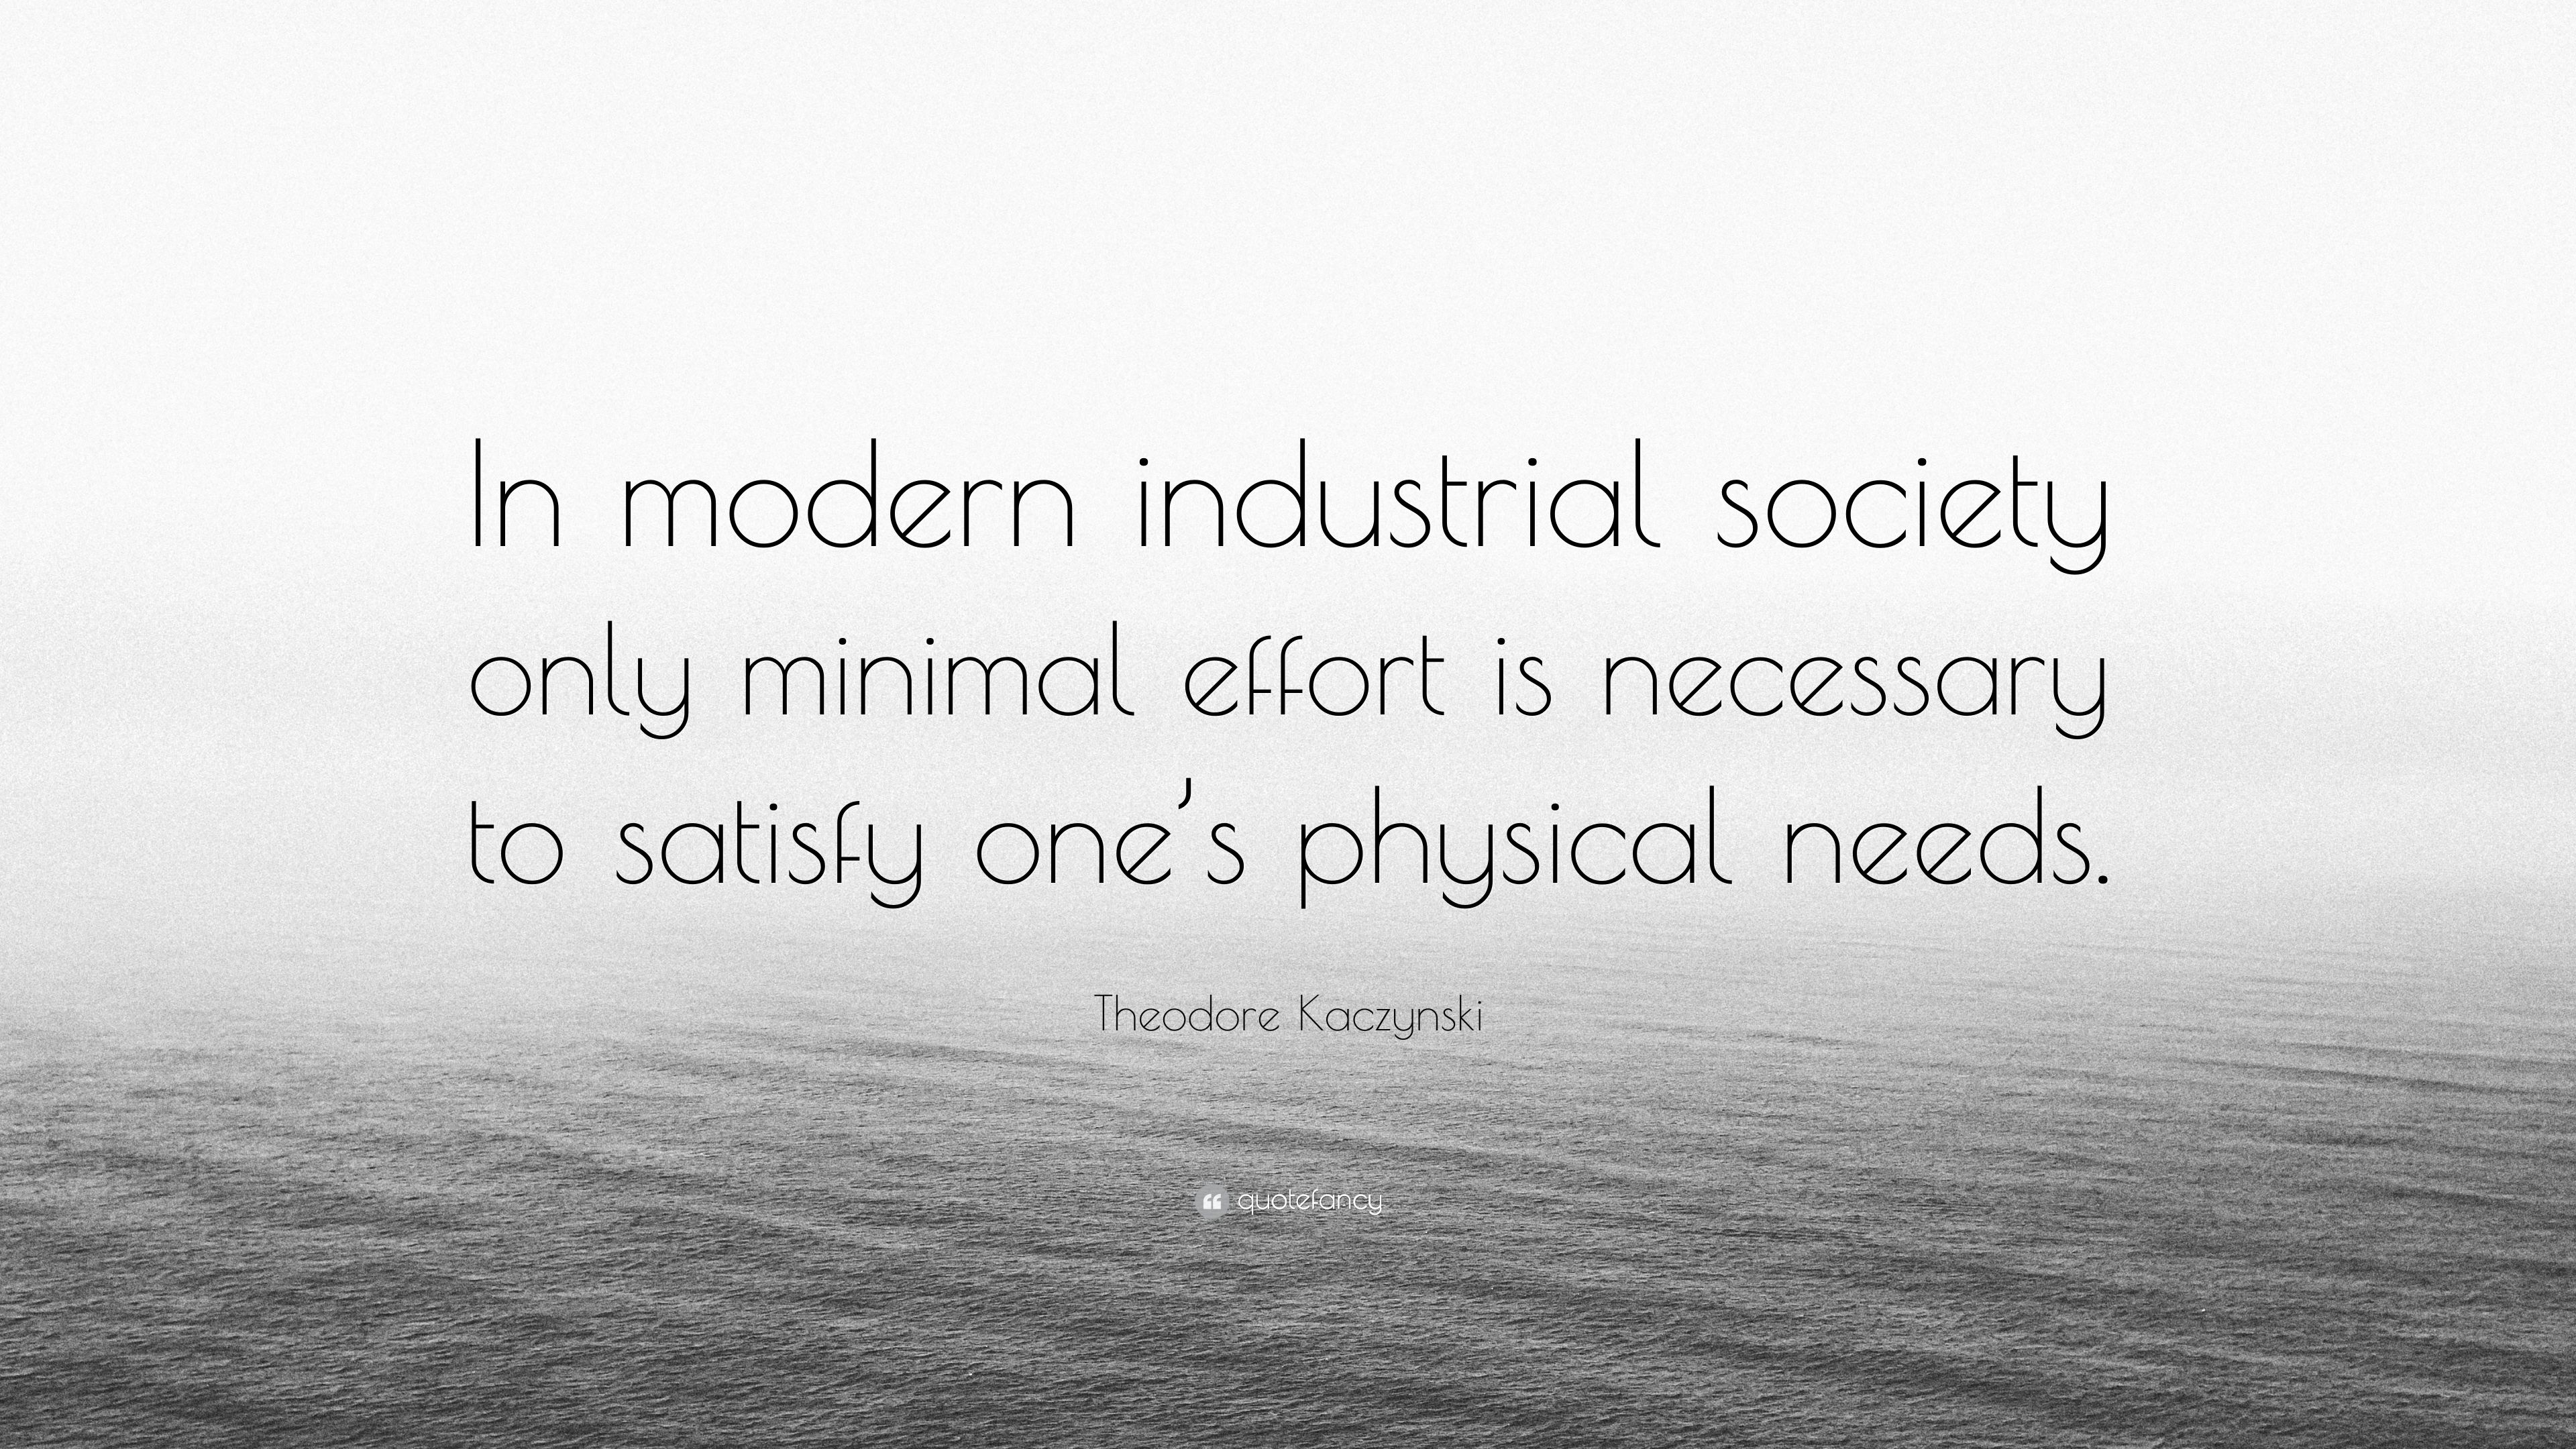 what is modern industrial society